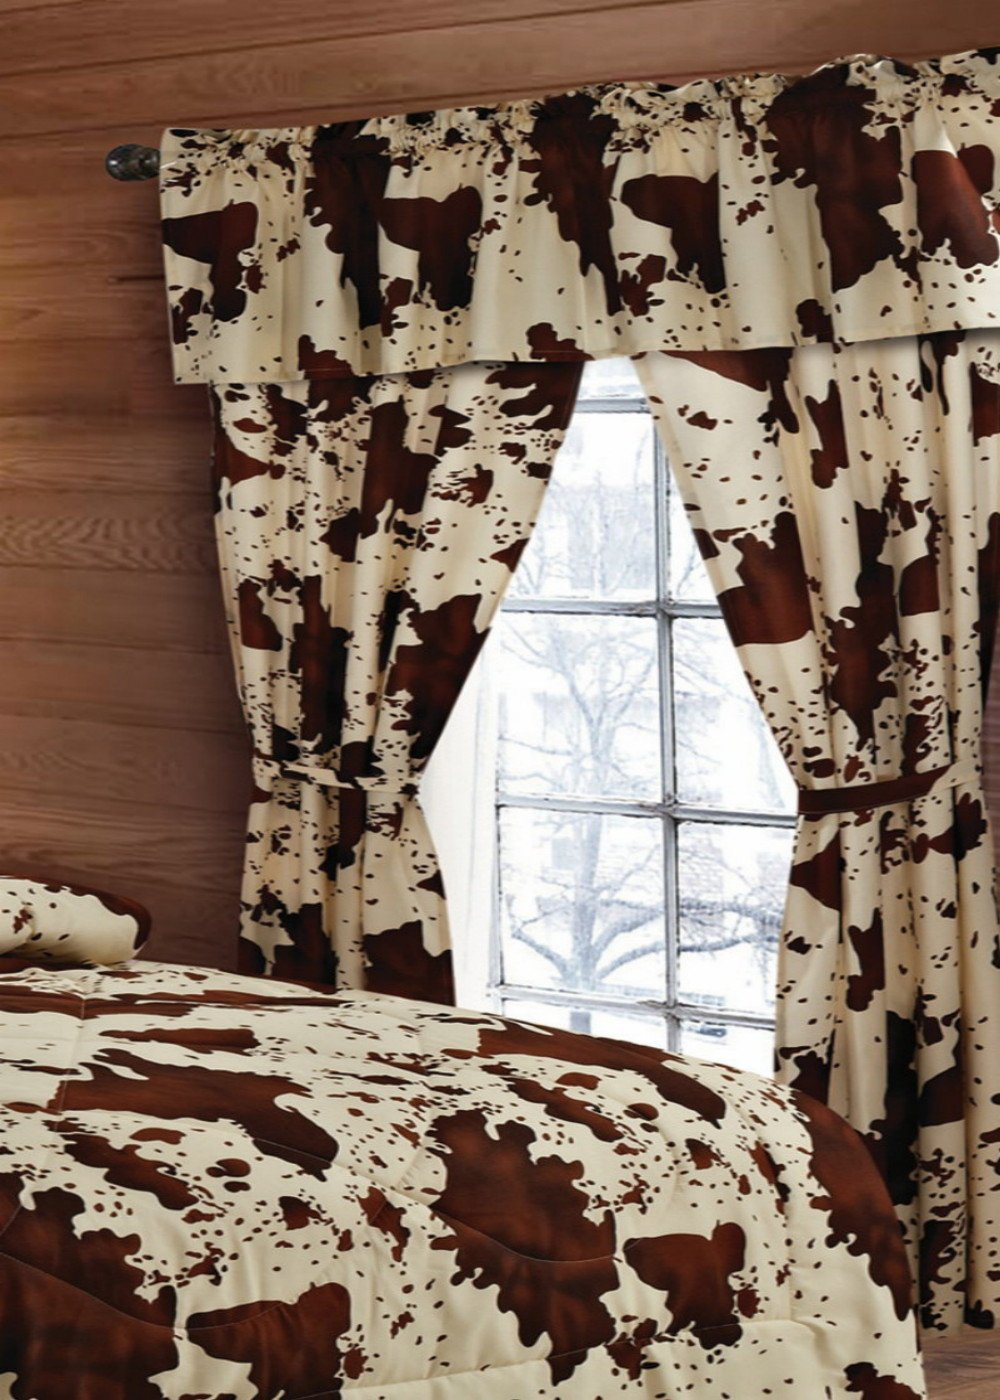 curtains window from pattern top garden european home up roman tab sheer in shade item embroidery curtain tie voile style kitchen brand bonprix drapes